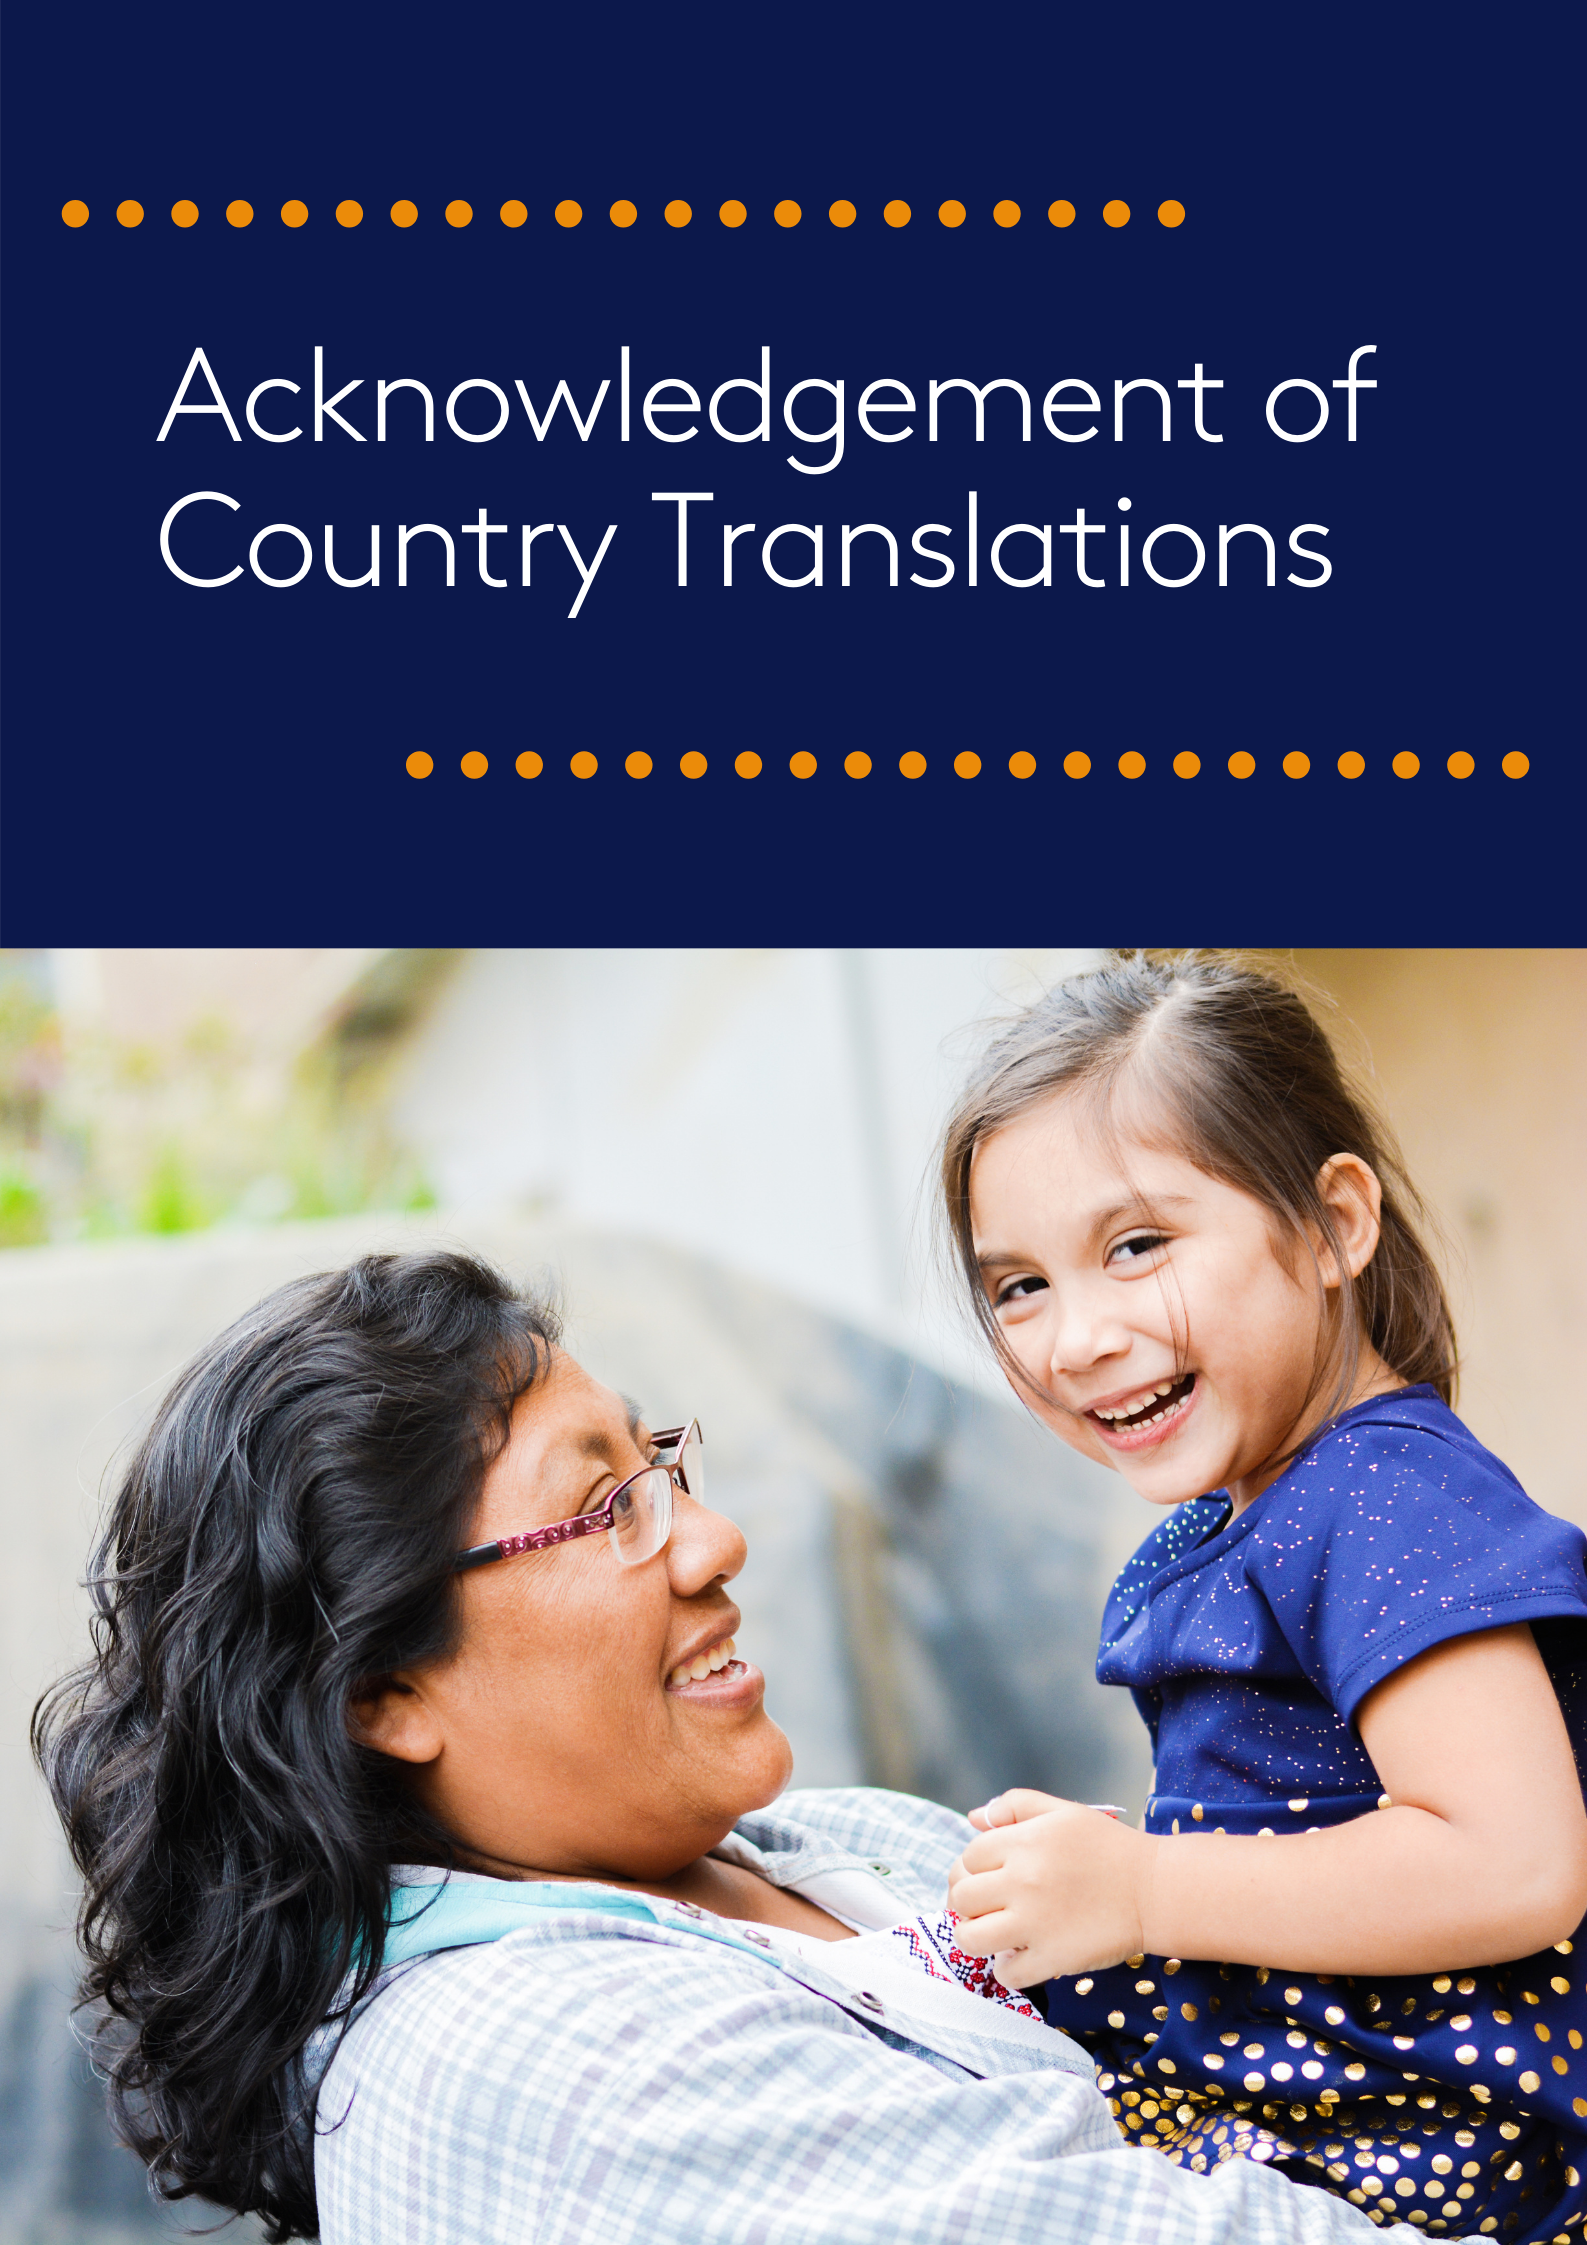 Acknowledgement of Country Translations